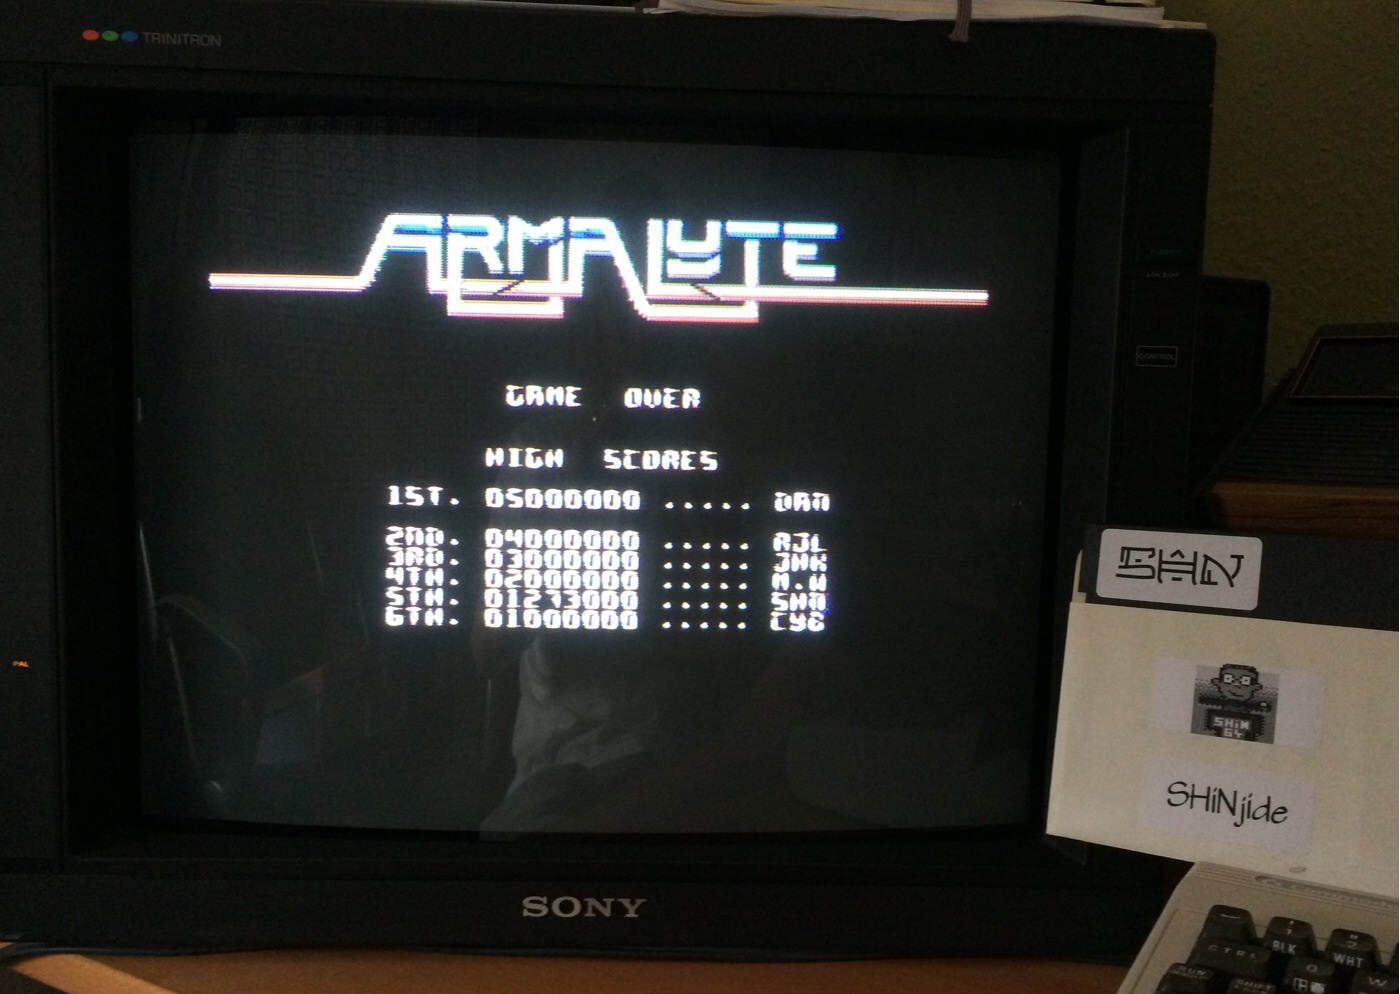 SHiNjide: Armalyte (Commodore 64) 1,273,000 points on 2014-07-25 10:08:23